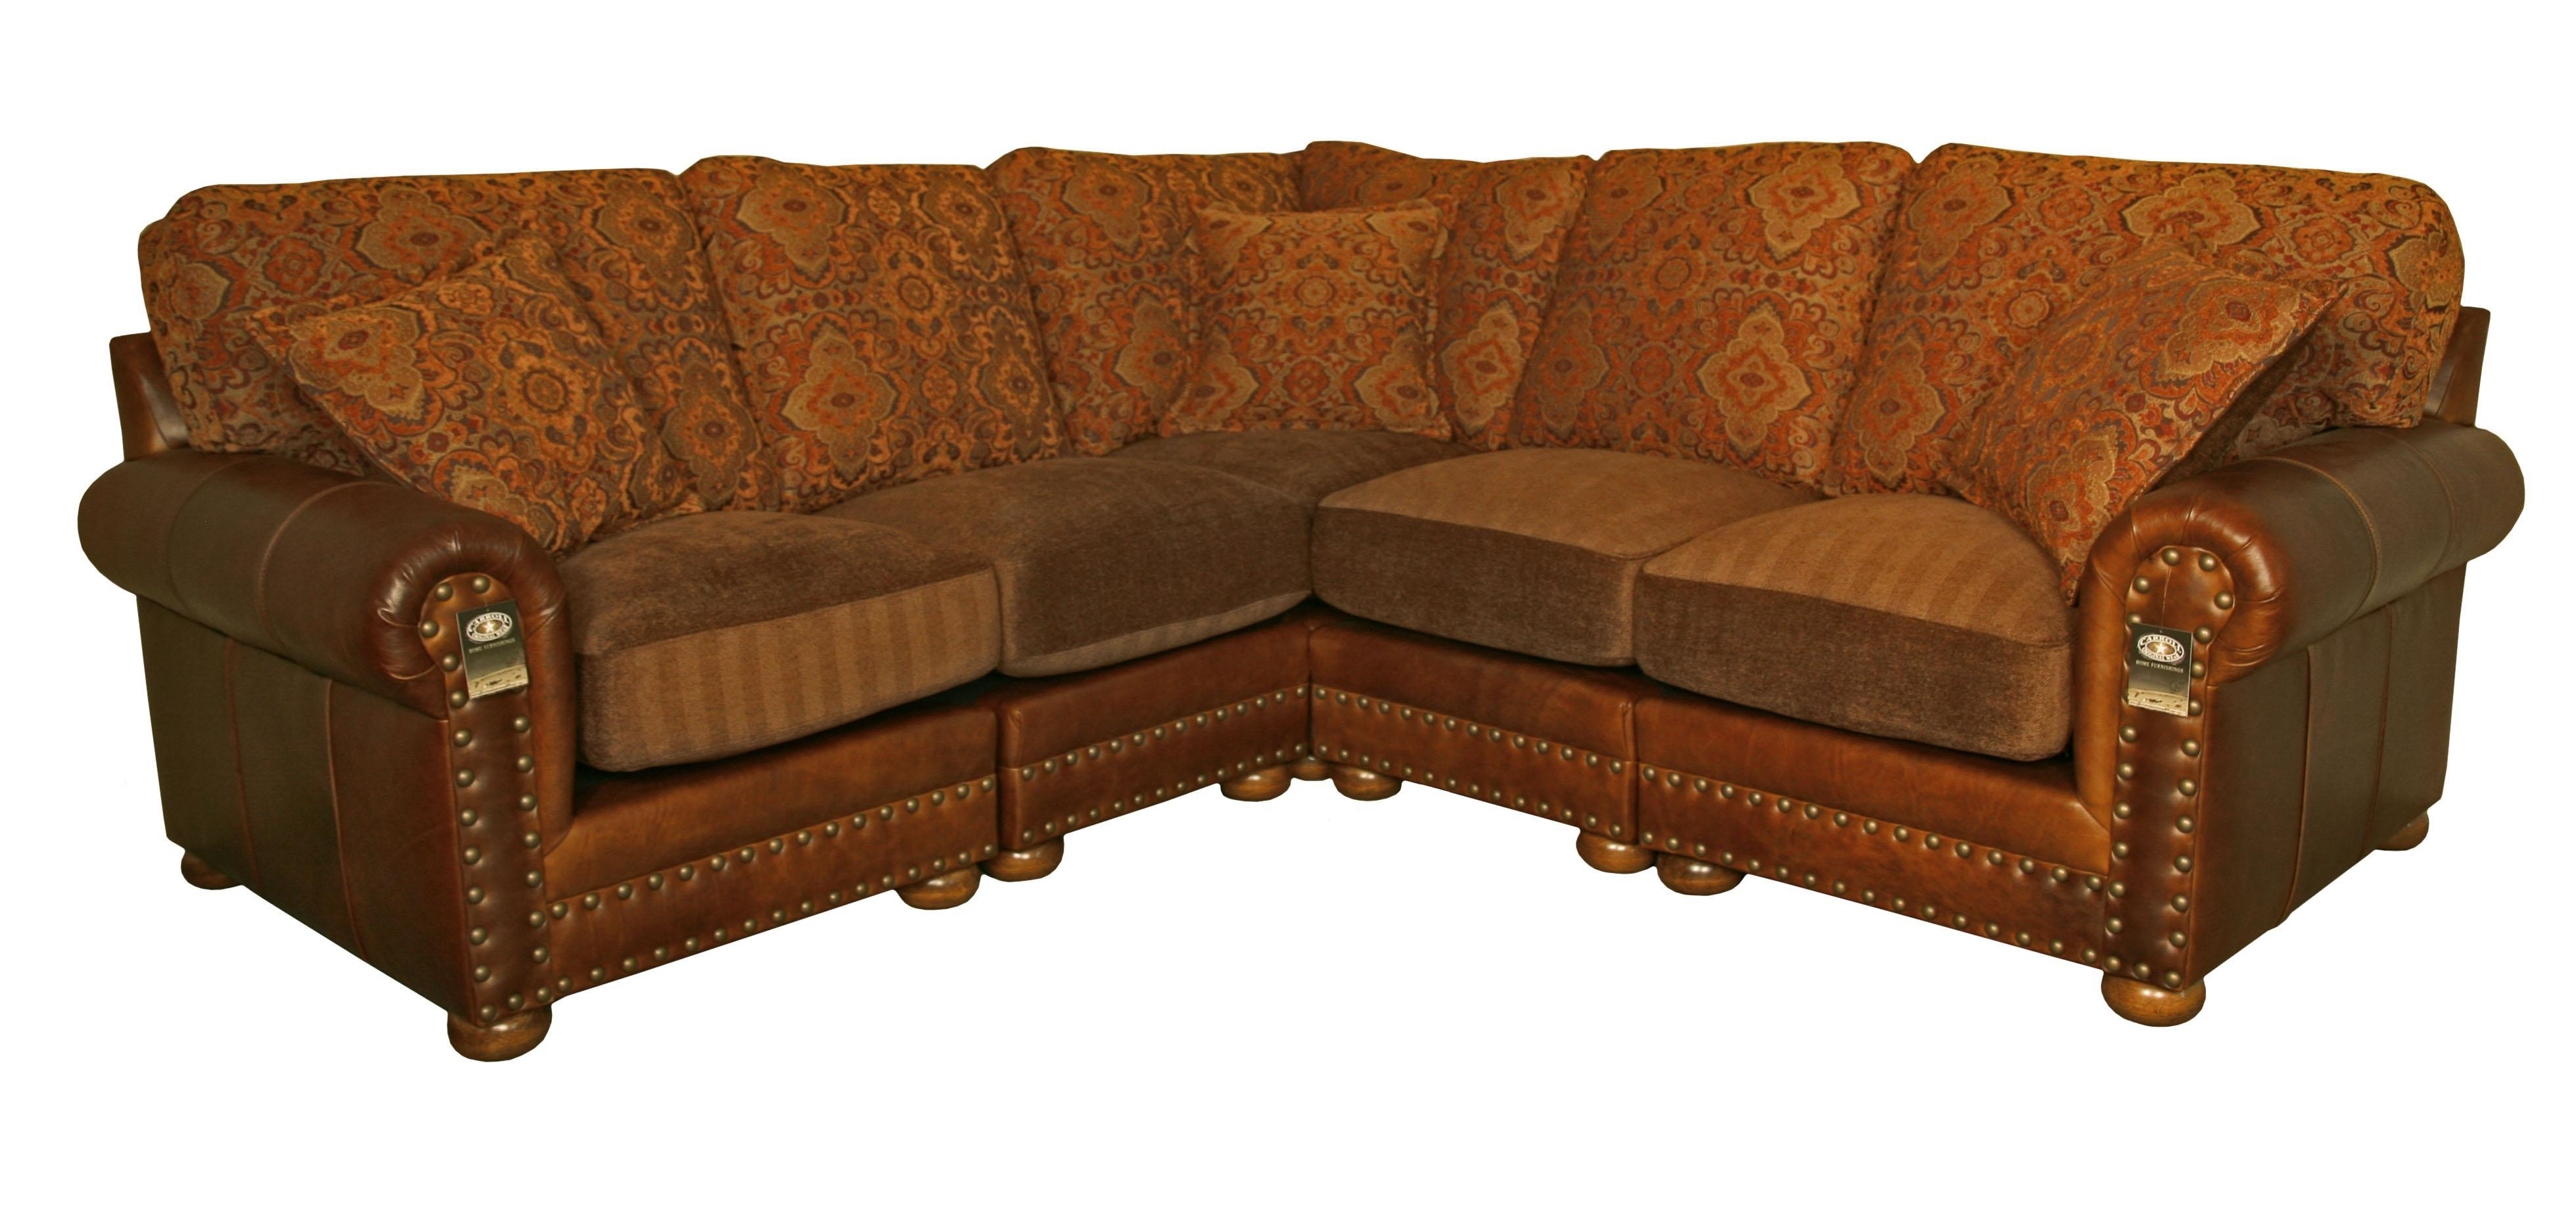 Leather Or Fabric Sofa With Leather And Cloth Sofa (View 3 of 20)